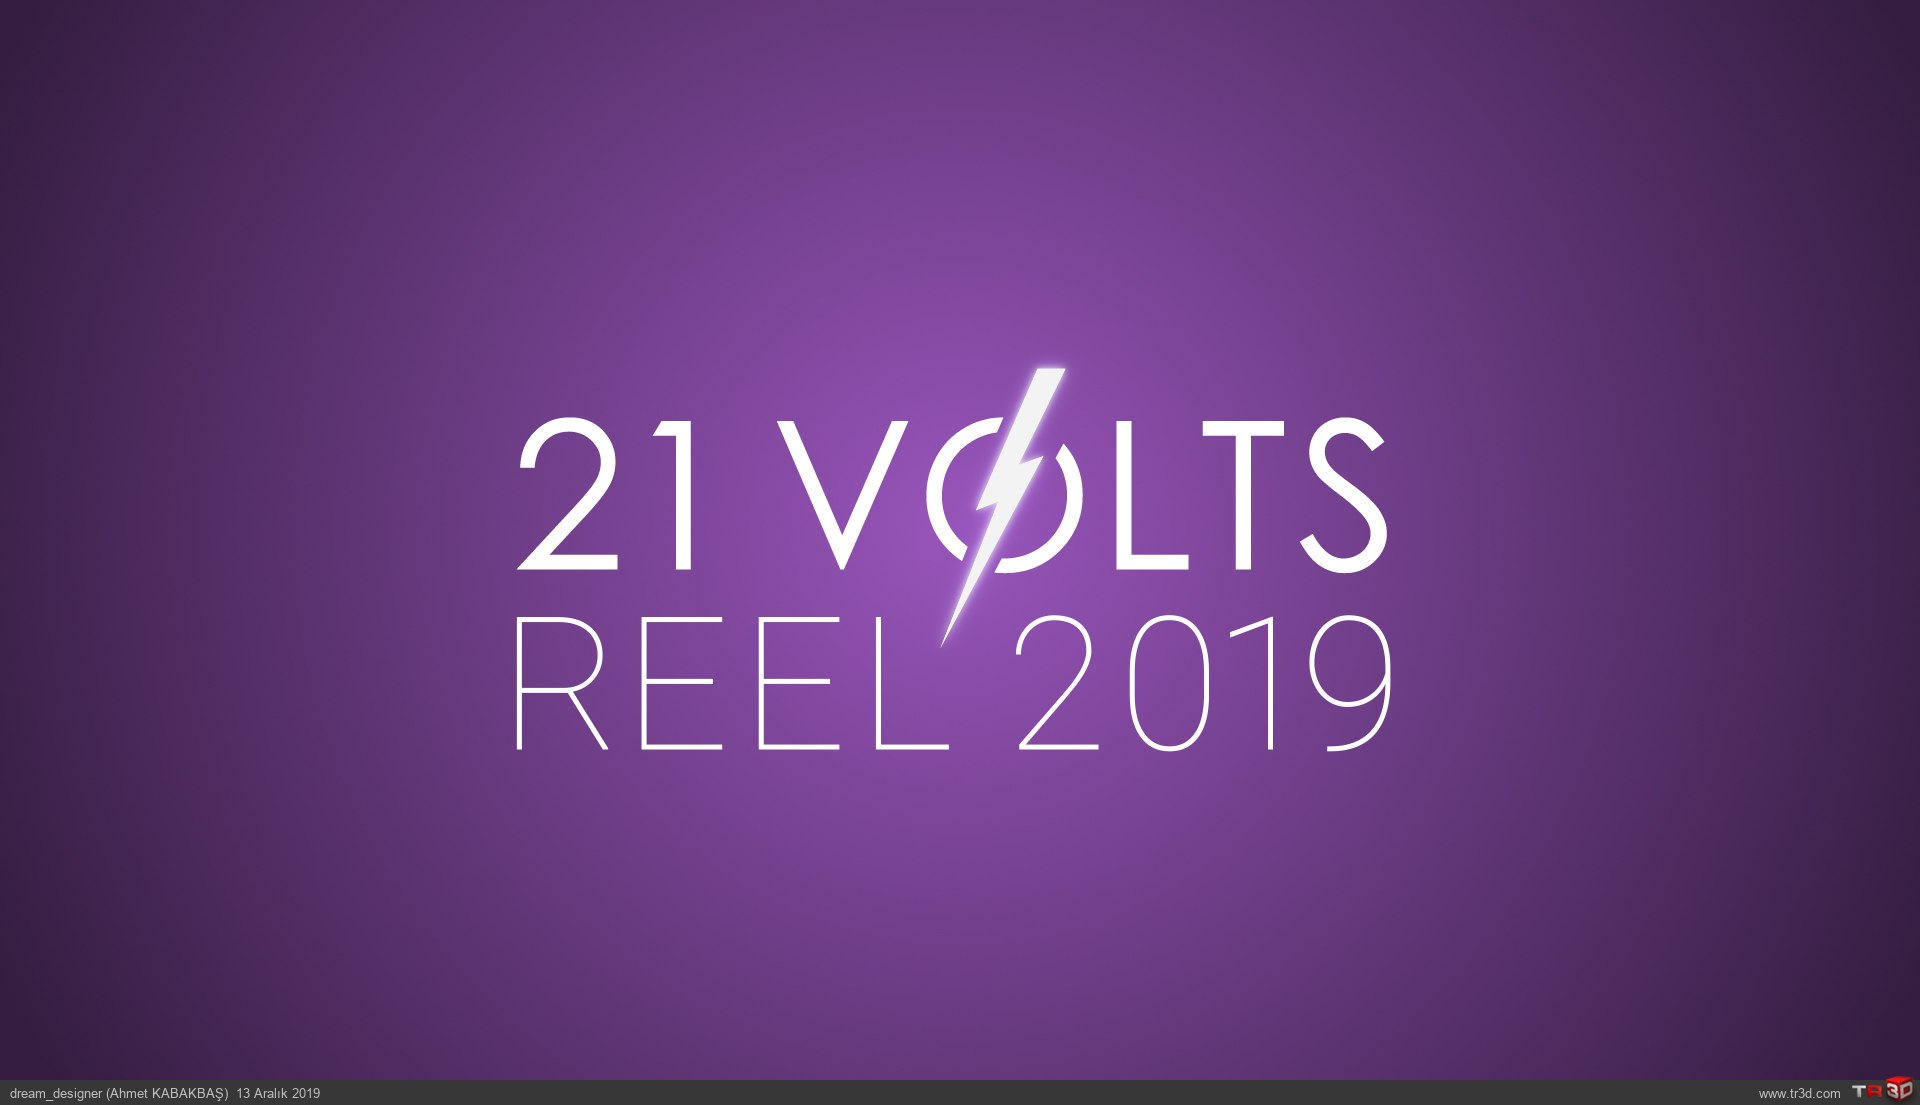 21 Volts Creative - Motion Reel 2019